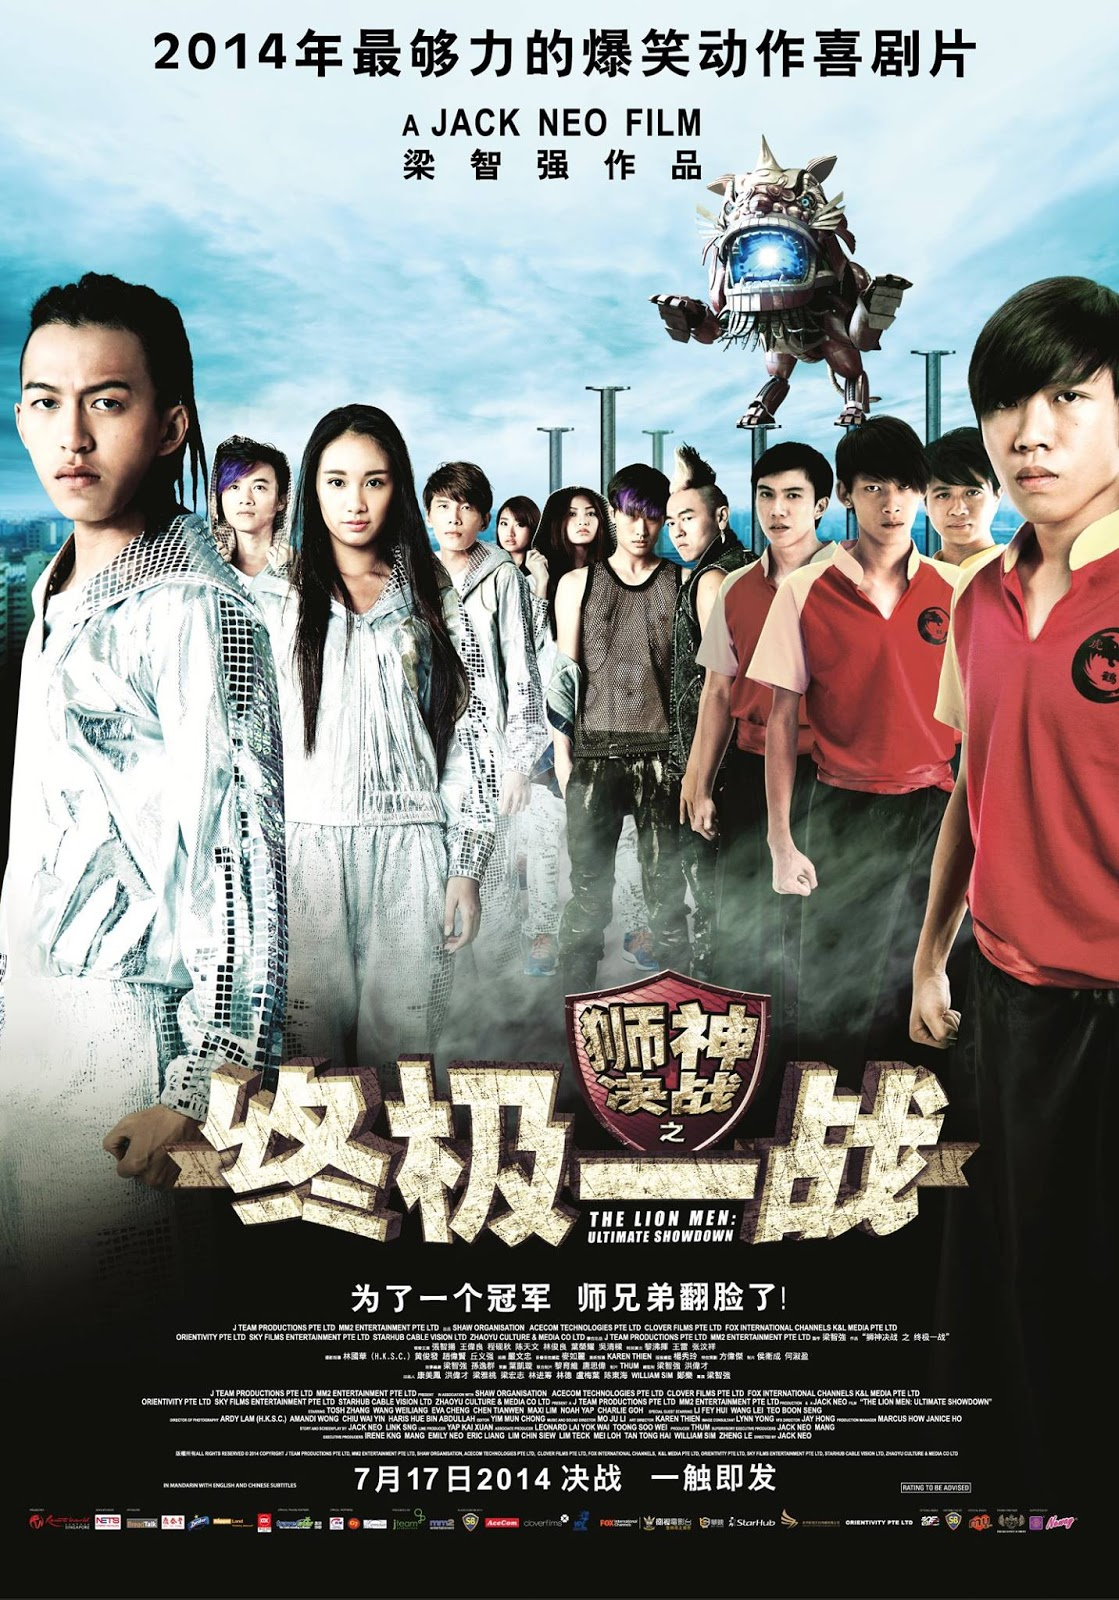 《狮神决战之终极一战》 THE LION MEN : Ultimate Showdown